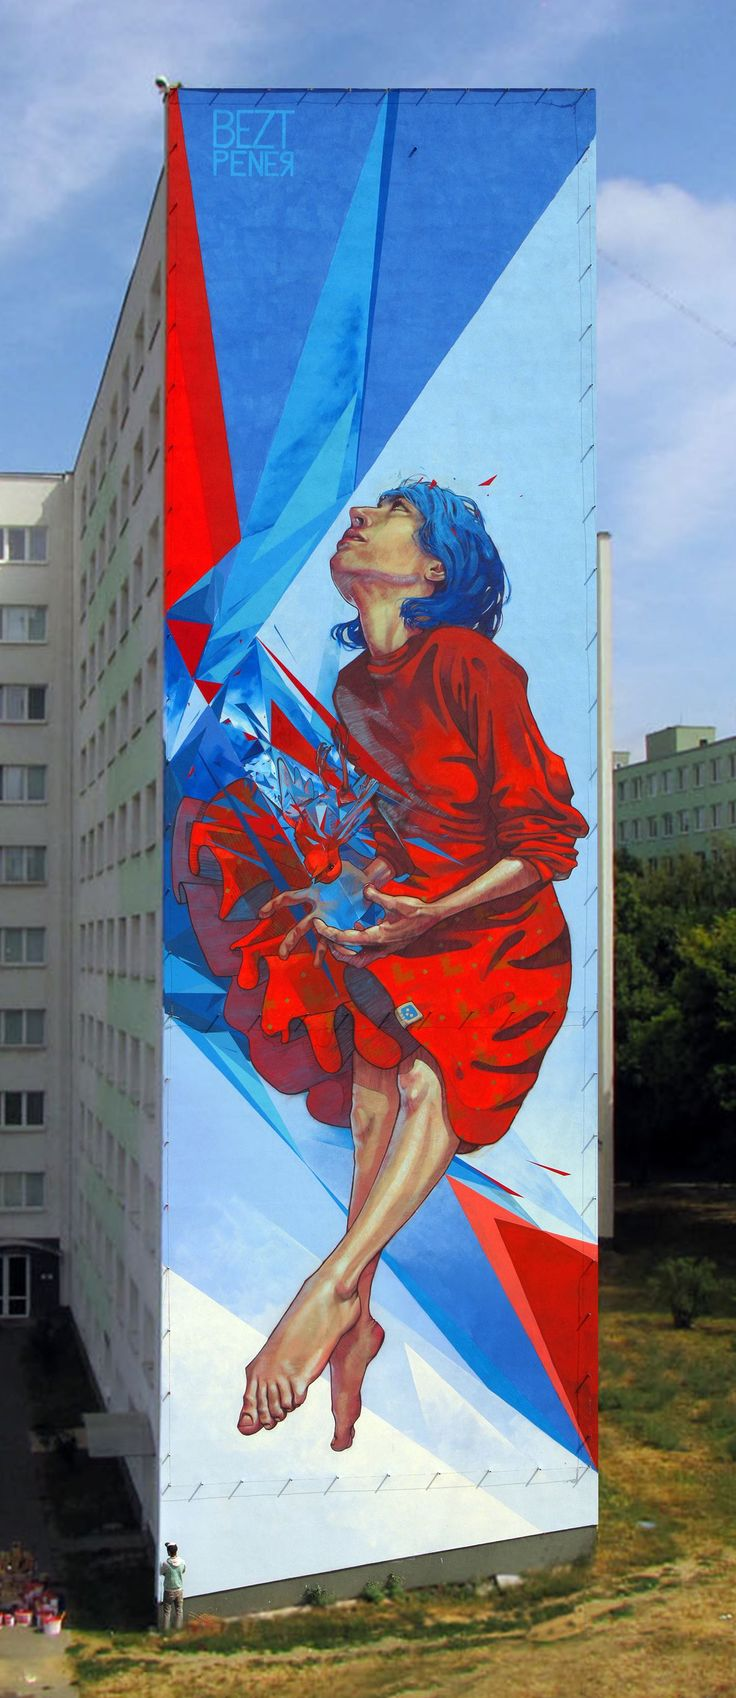 Surreal Murals by 'Etam Cru' Turn Drab Facades into Eye-Popping Imagery   http://www.thisiscolossal.com/2014/01/etam-cru-murals-2013/